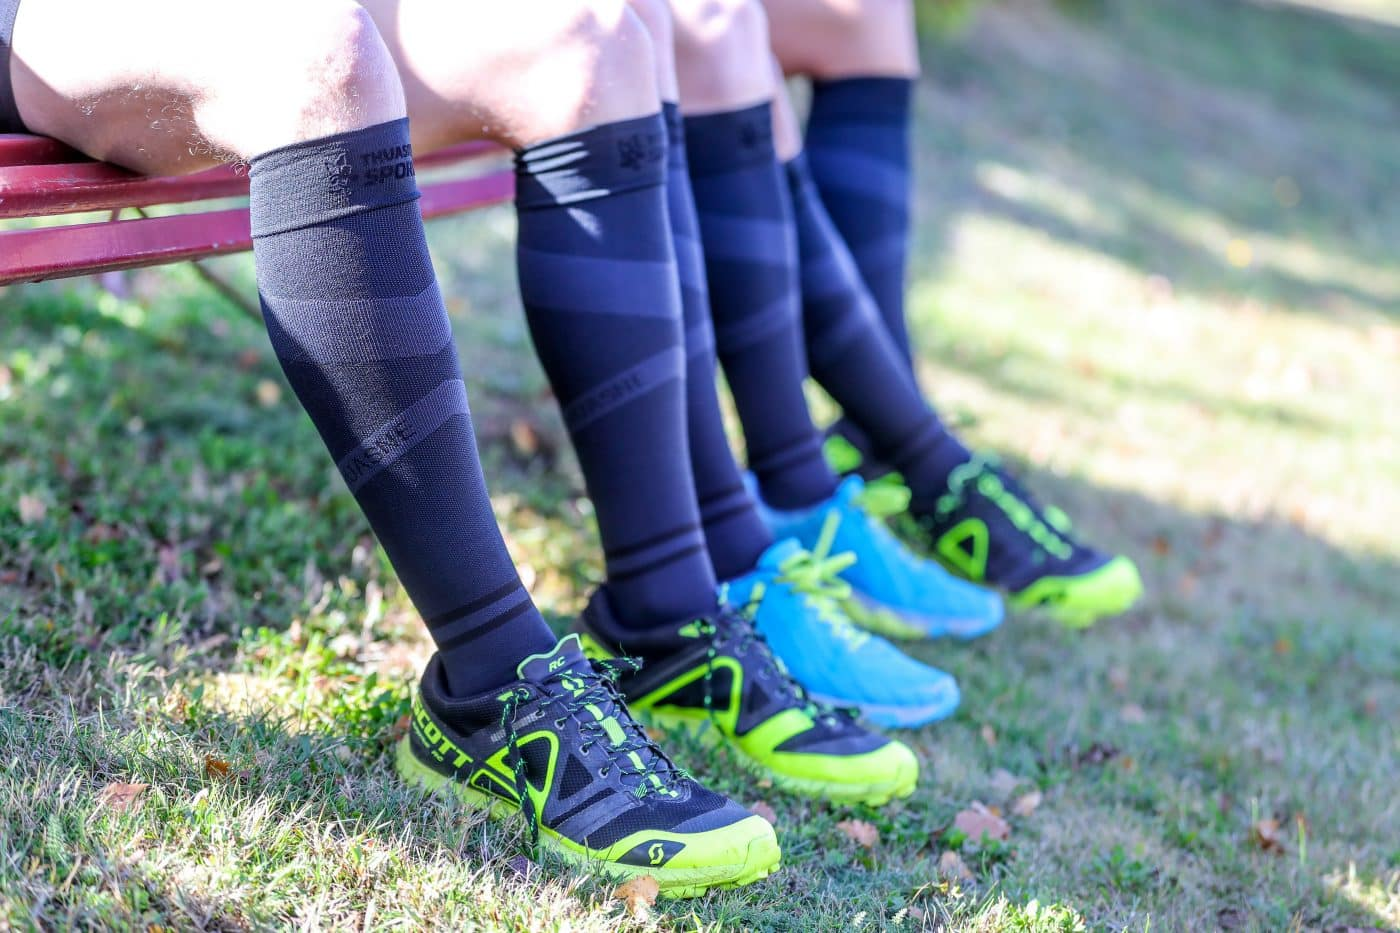 thuasne - chaussettes recup- 1